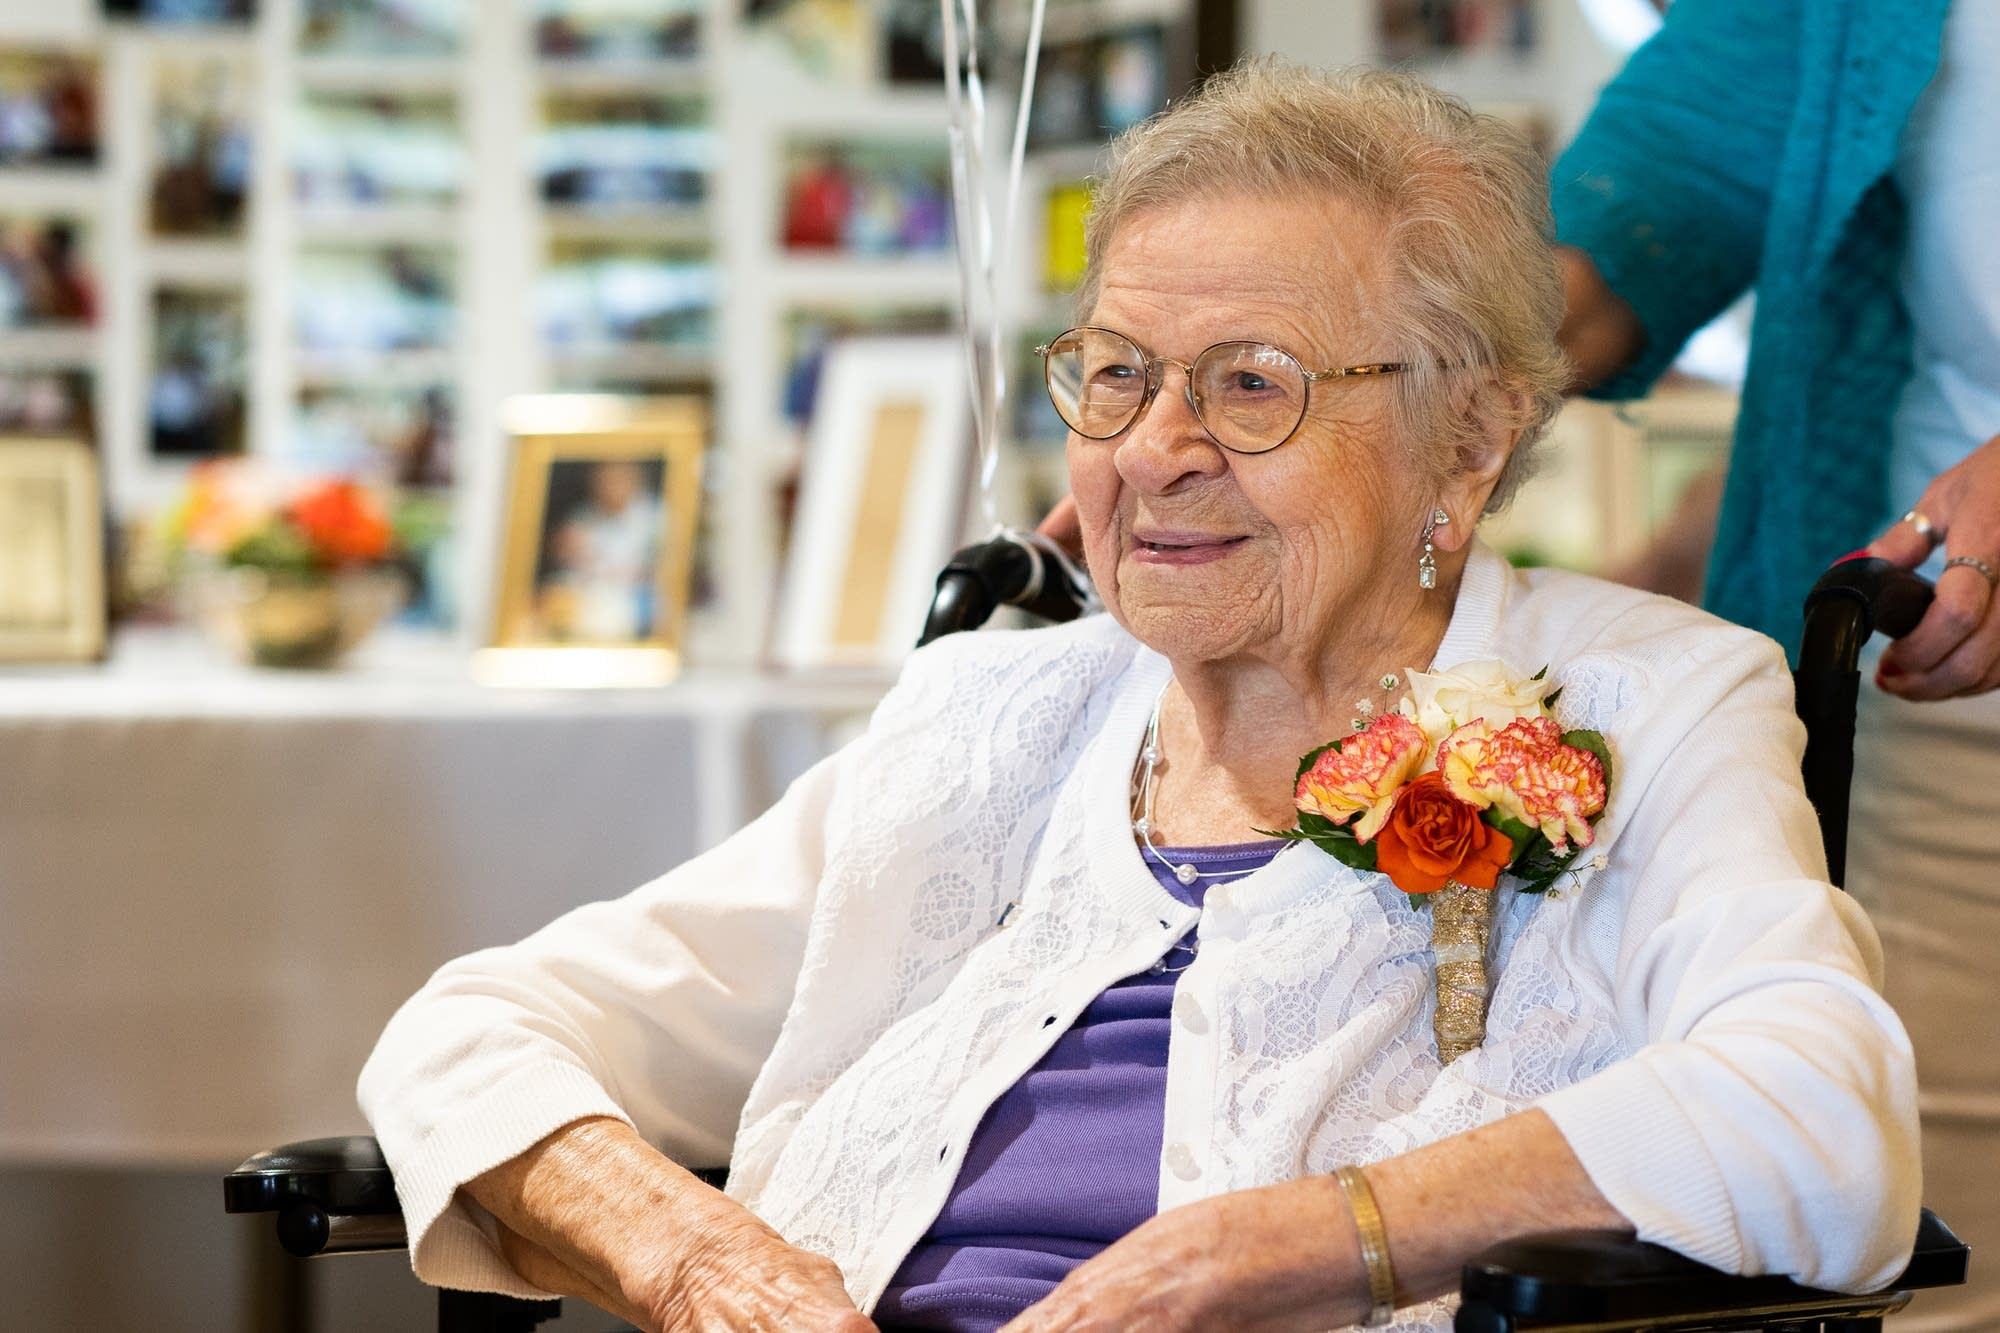 Super-centenarian Evelyn Kleine smiles at friends and family.